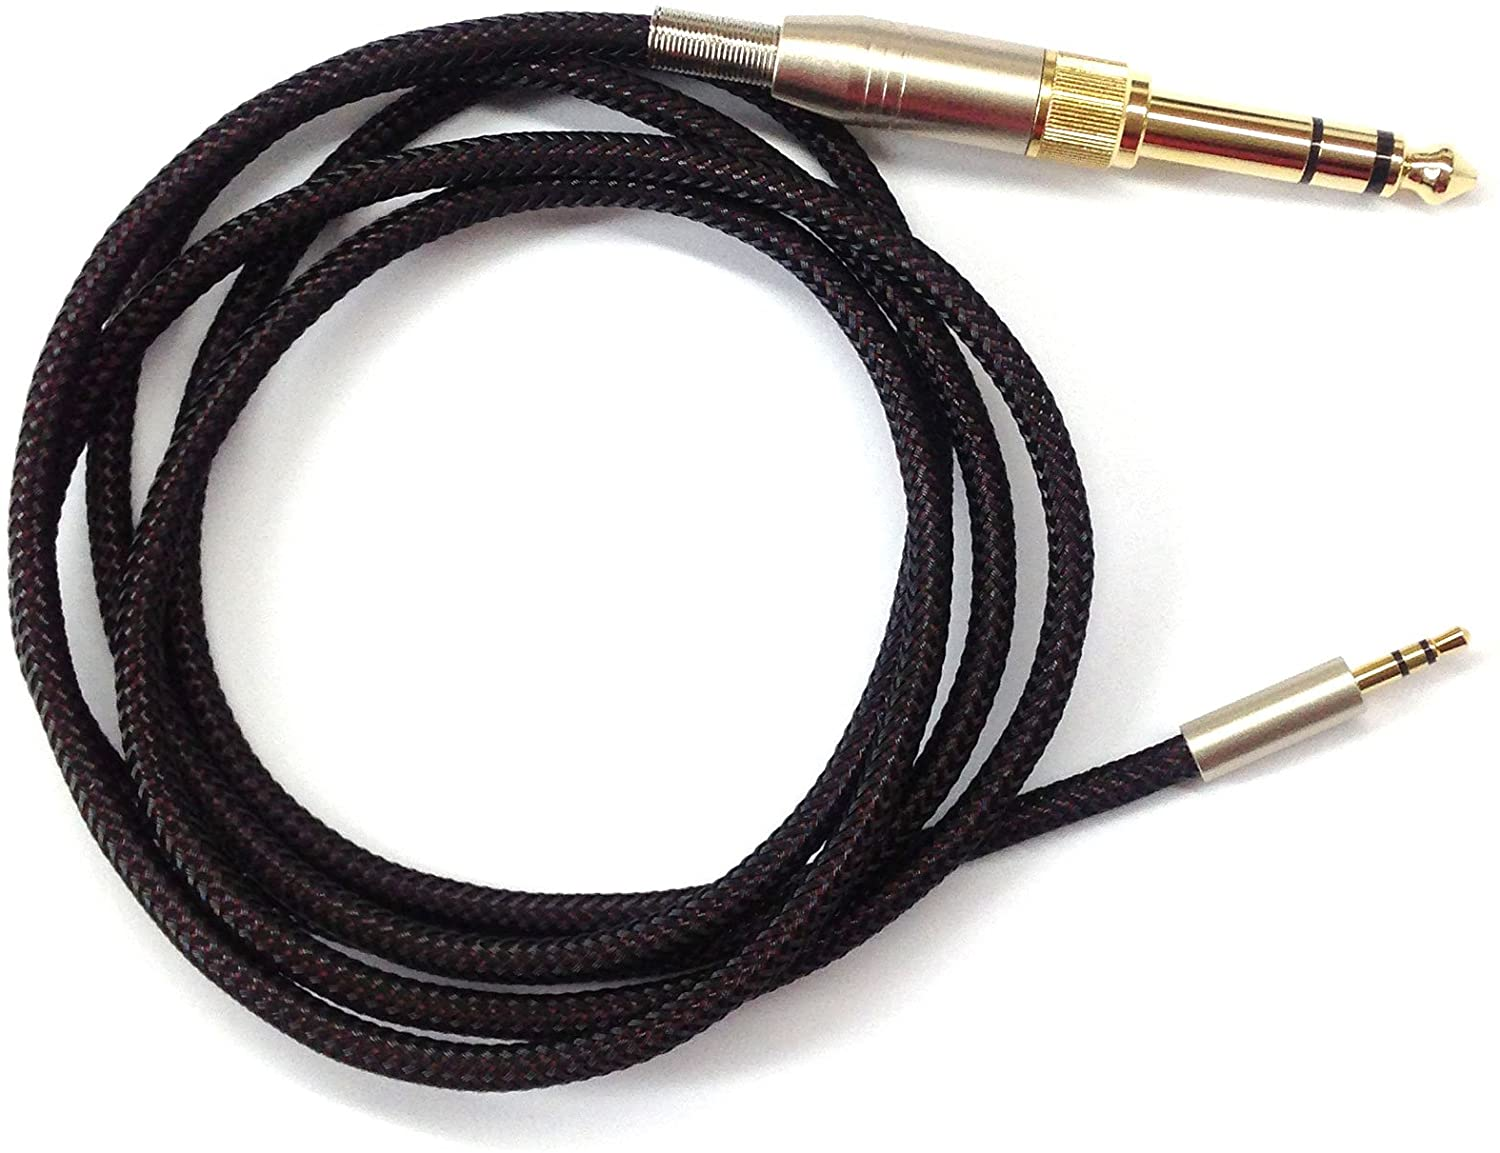 ATH-ANC700BT ATH-ANC29 NewFantasia Replacement Audio Upgrade Cable Compatible with Audio-Technica ATH-ANC27 ATH-ANC900BT Headphones 1.2meters//4ft ATH-ANC25